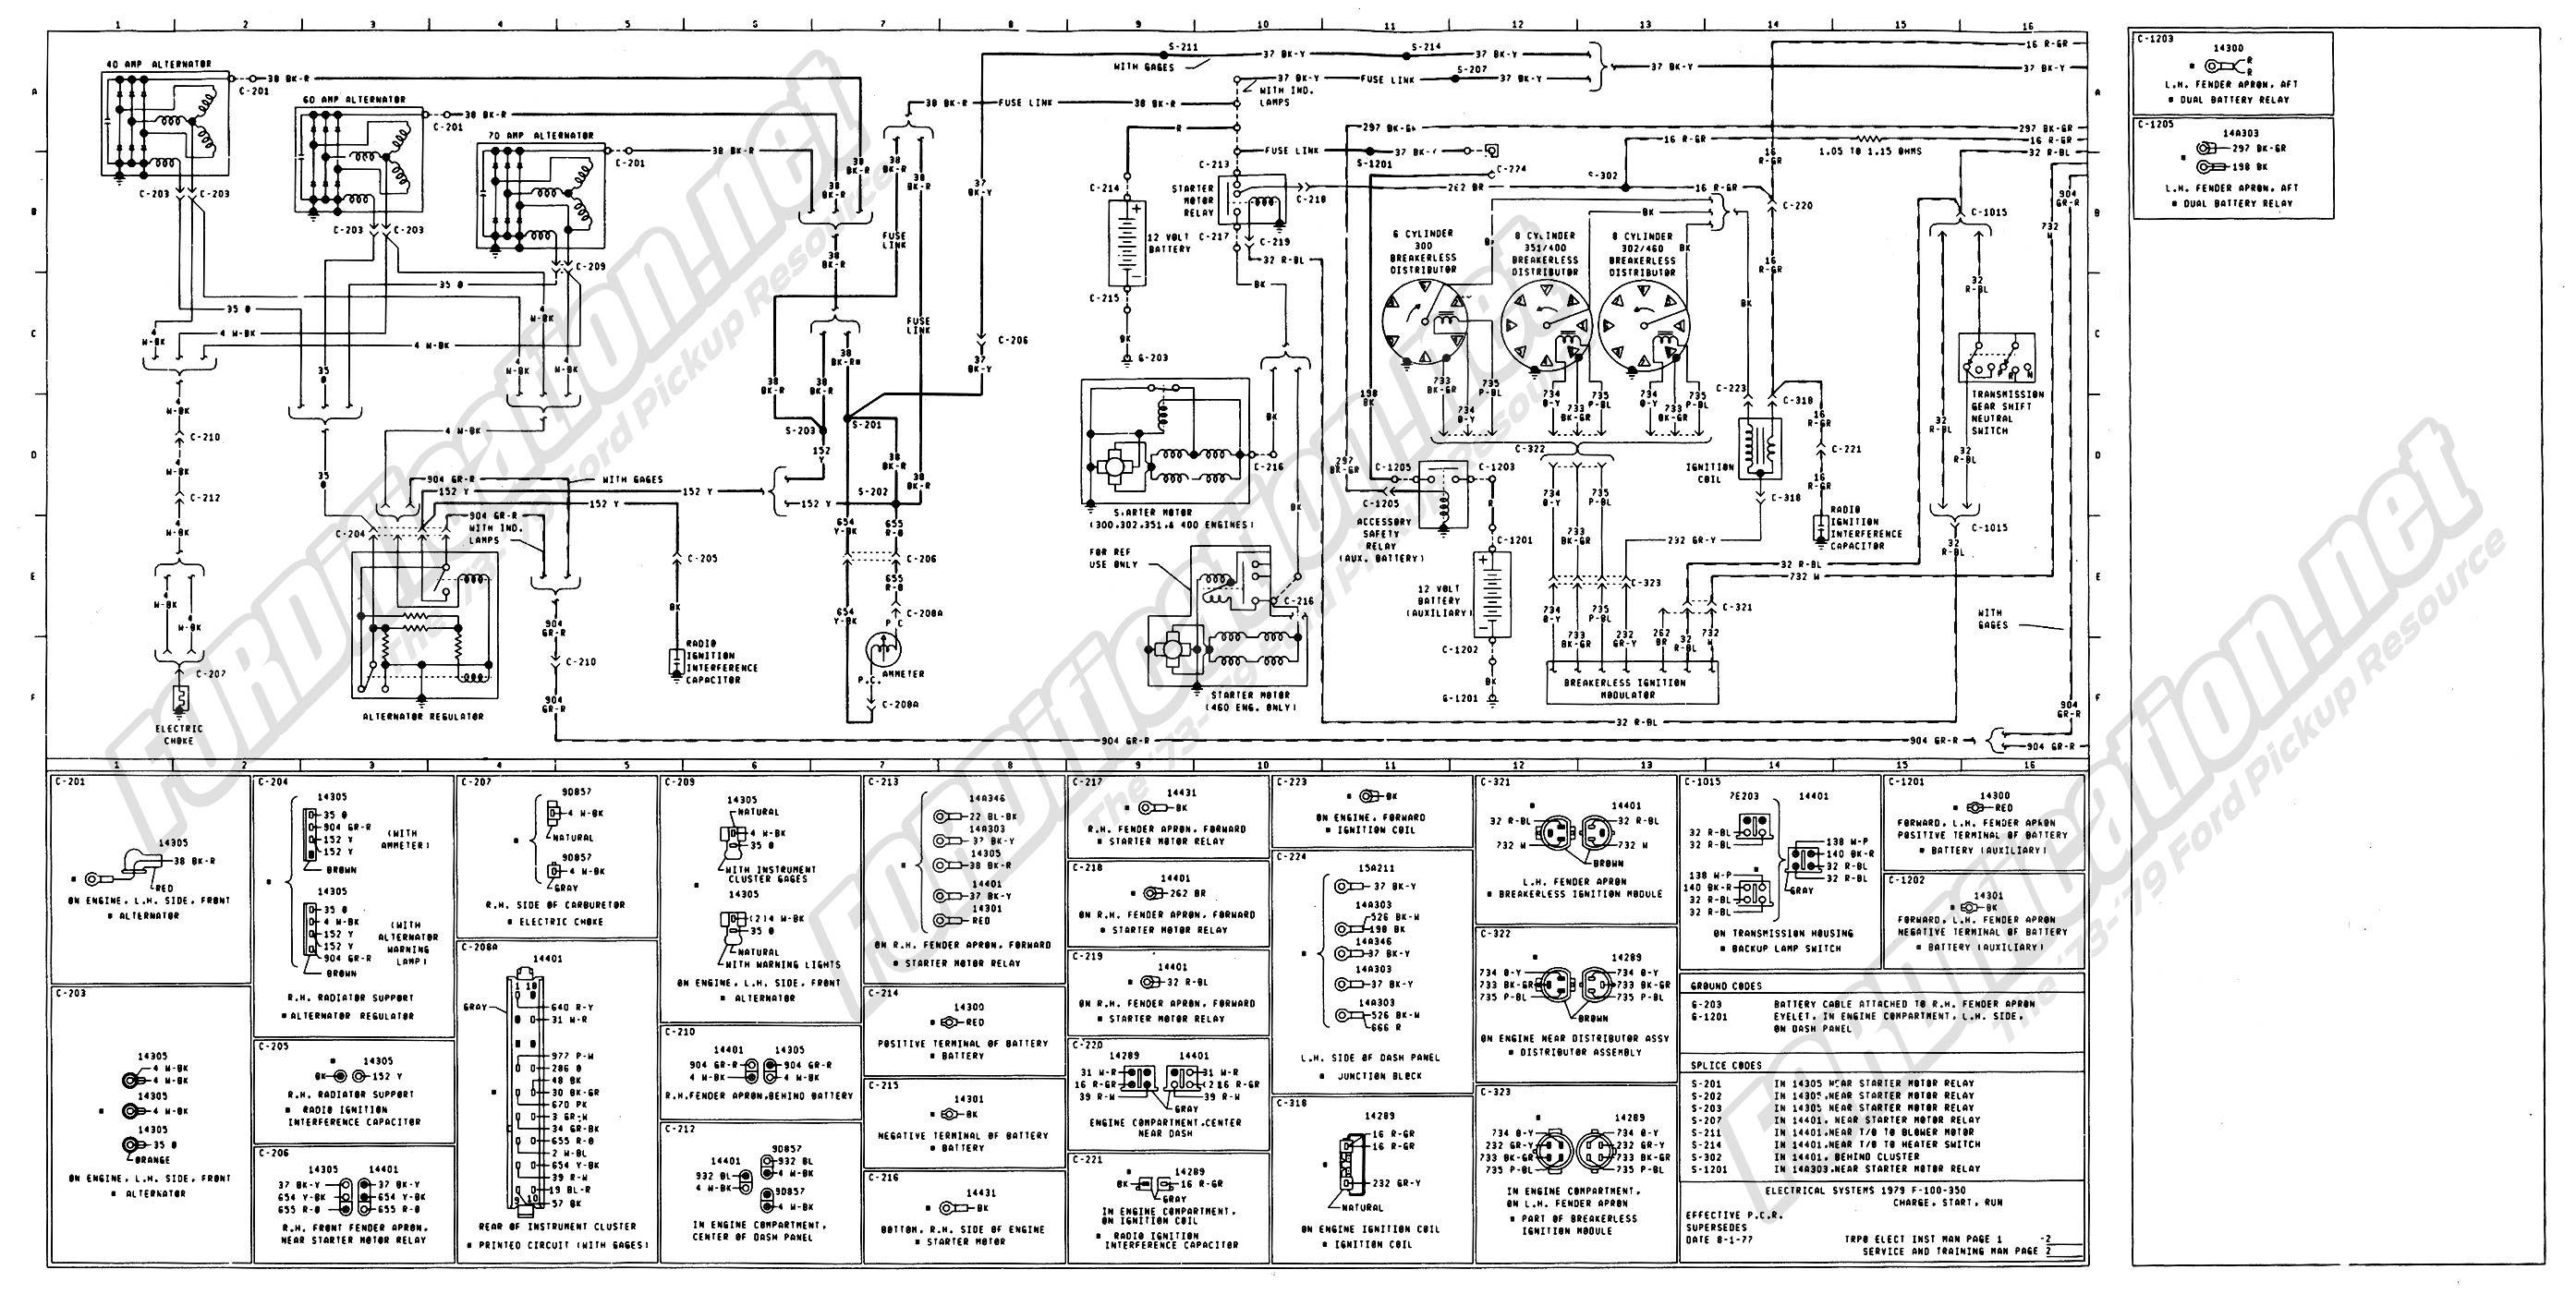 Wiring Diagram 78 F 150 | Wiring Diagram on